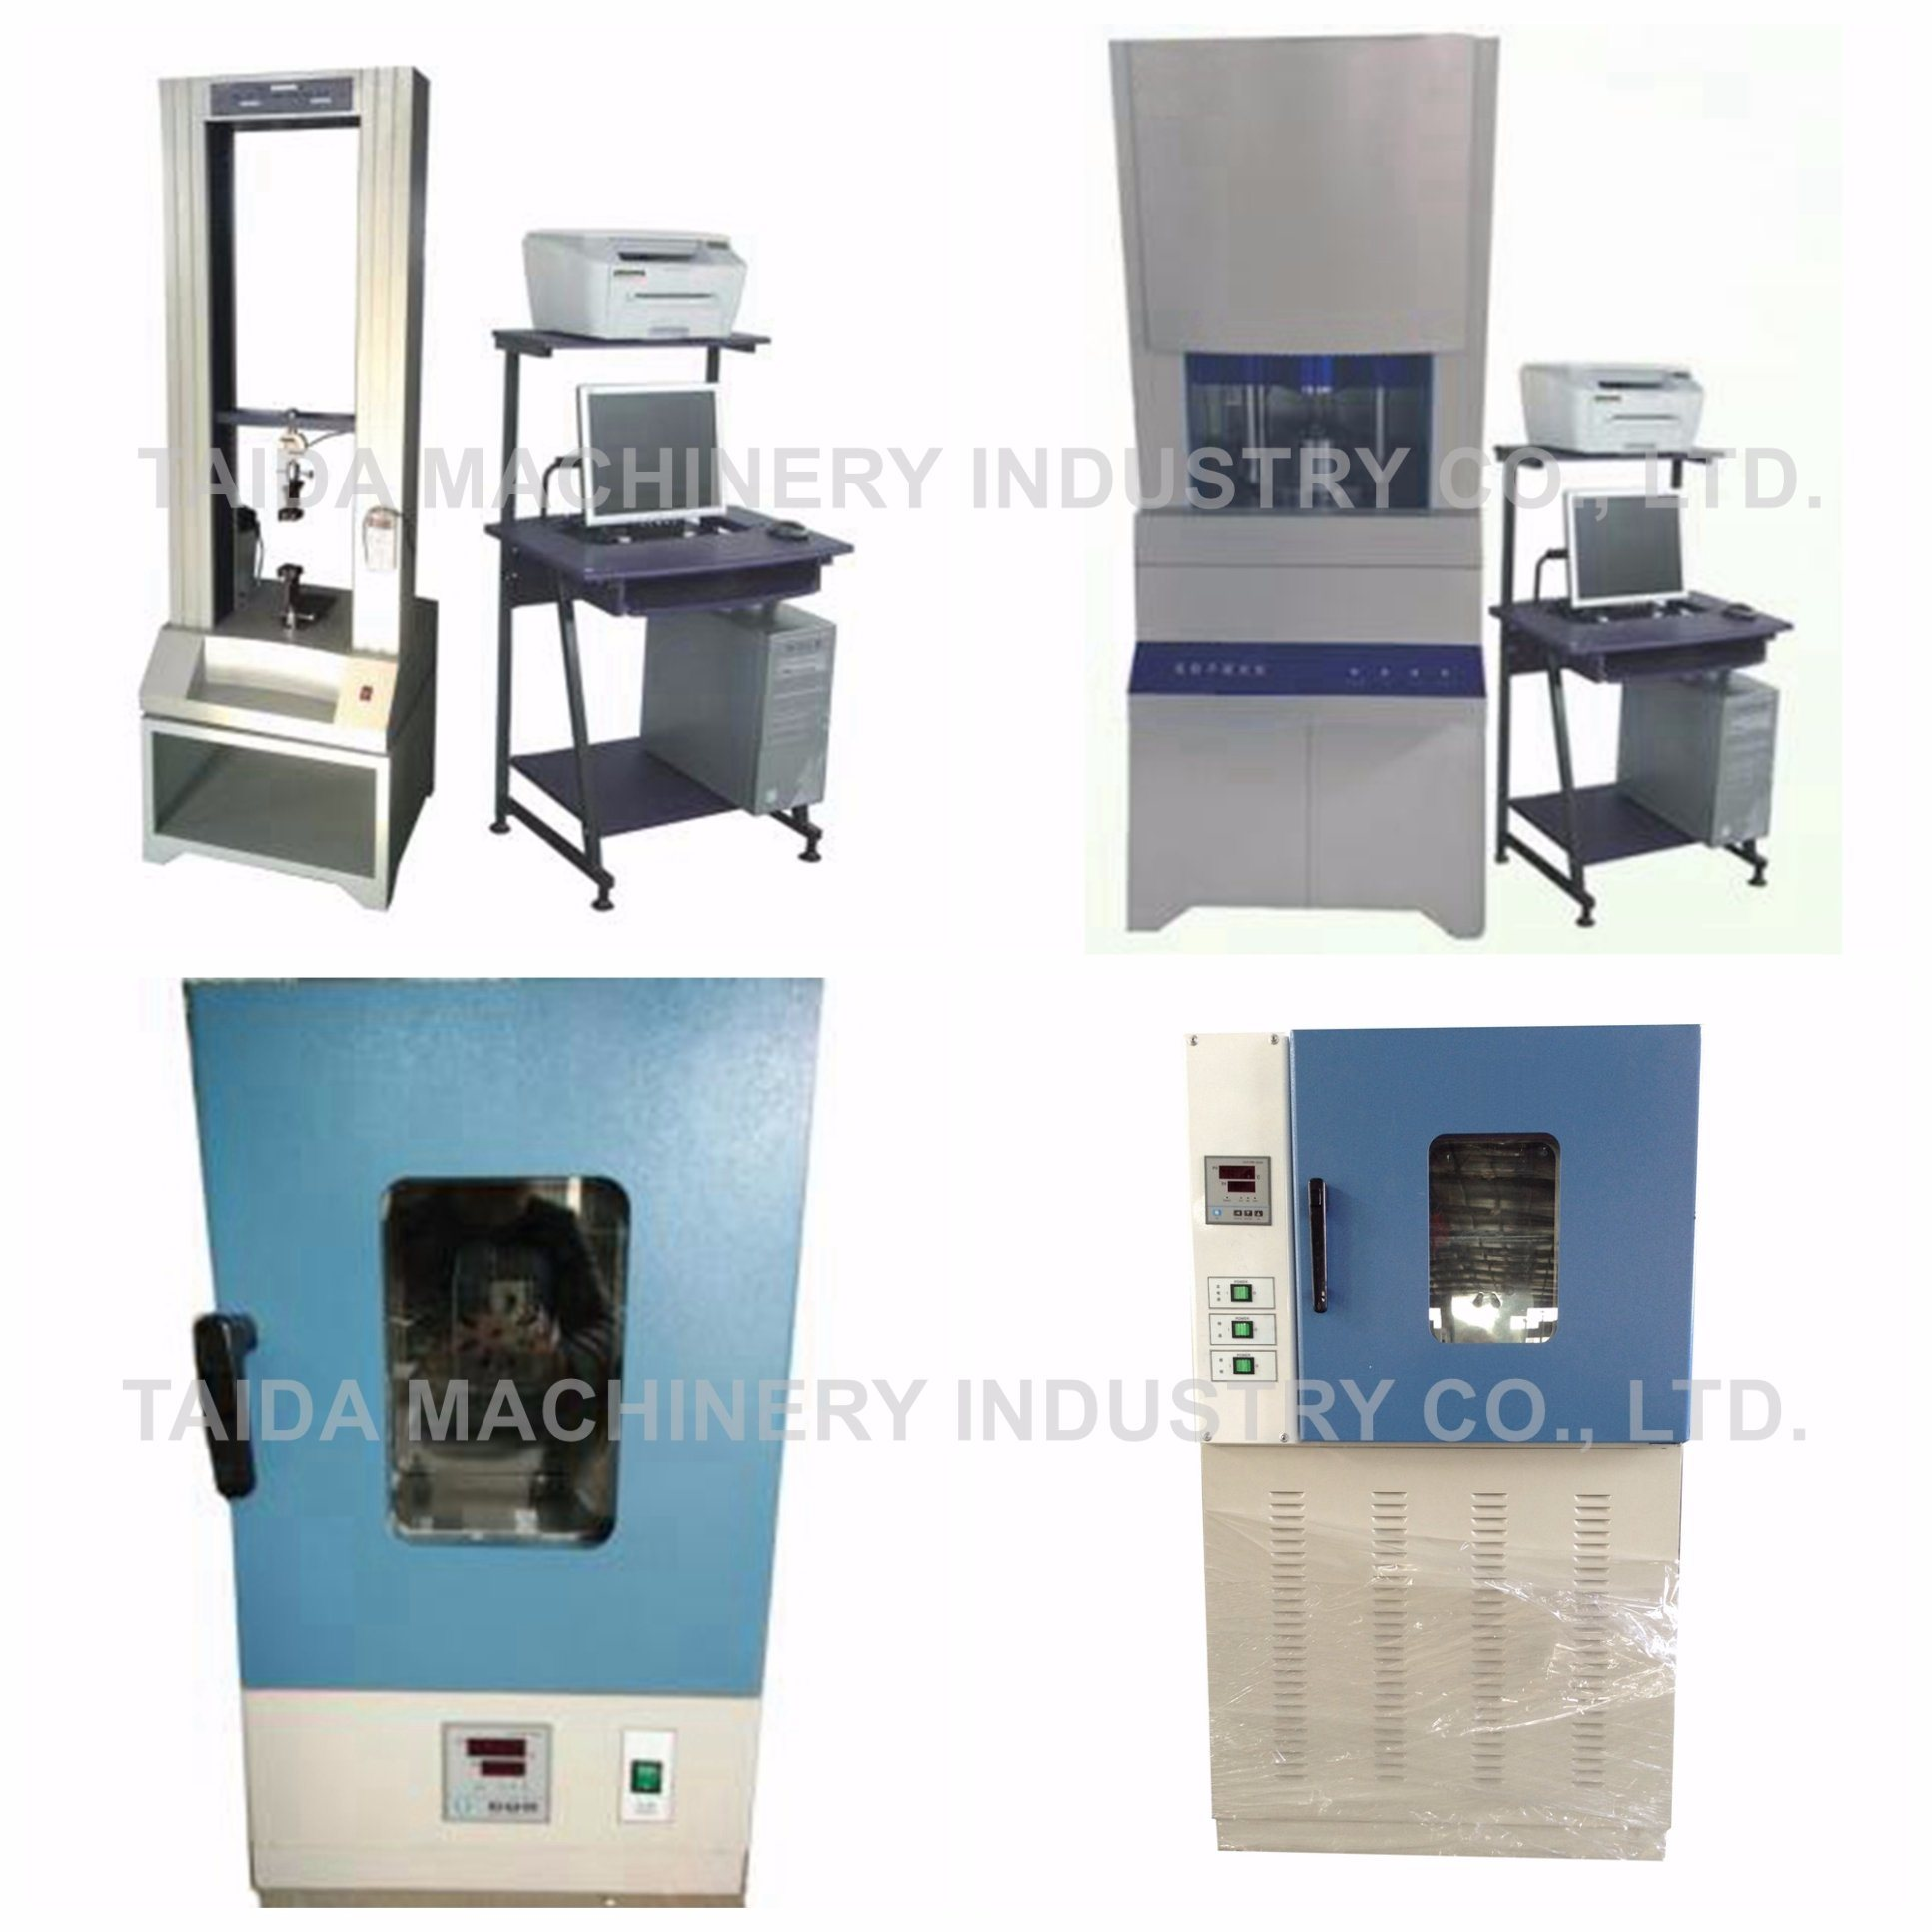 Rubber DIN Abrasion Tester Testing Machine Laboratory Equipment Instrument